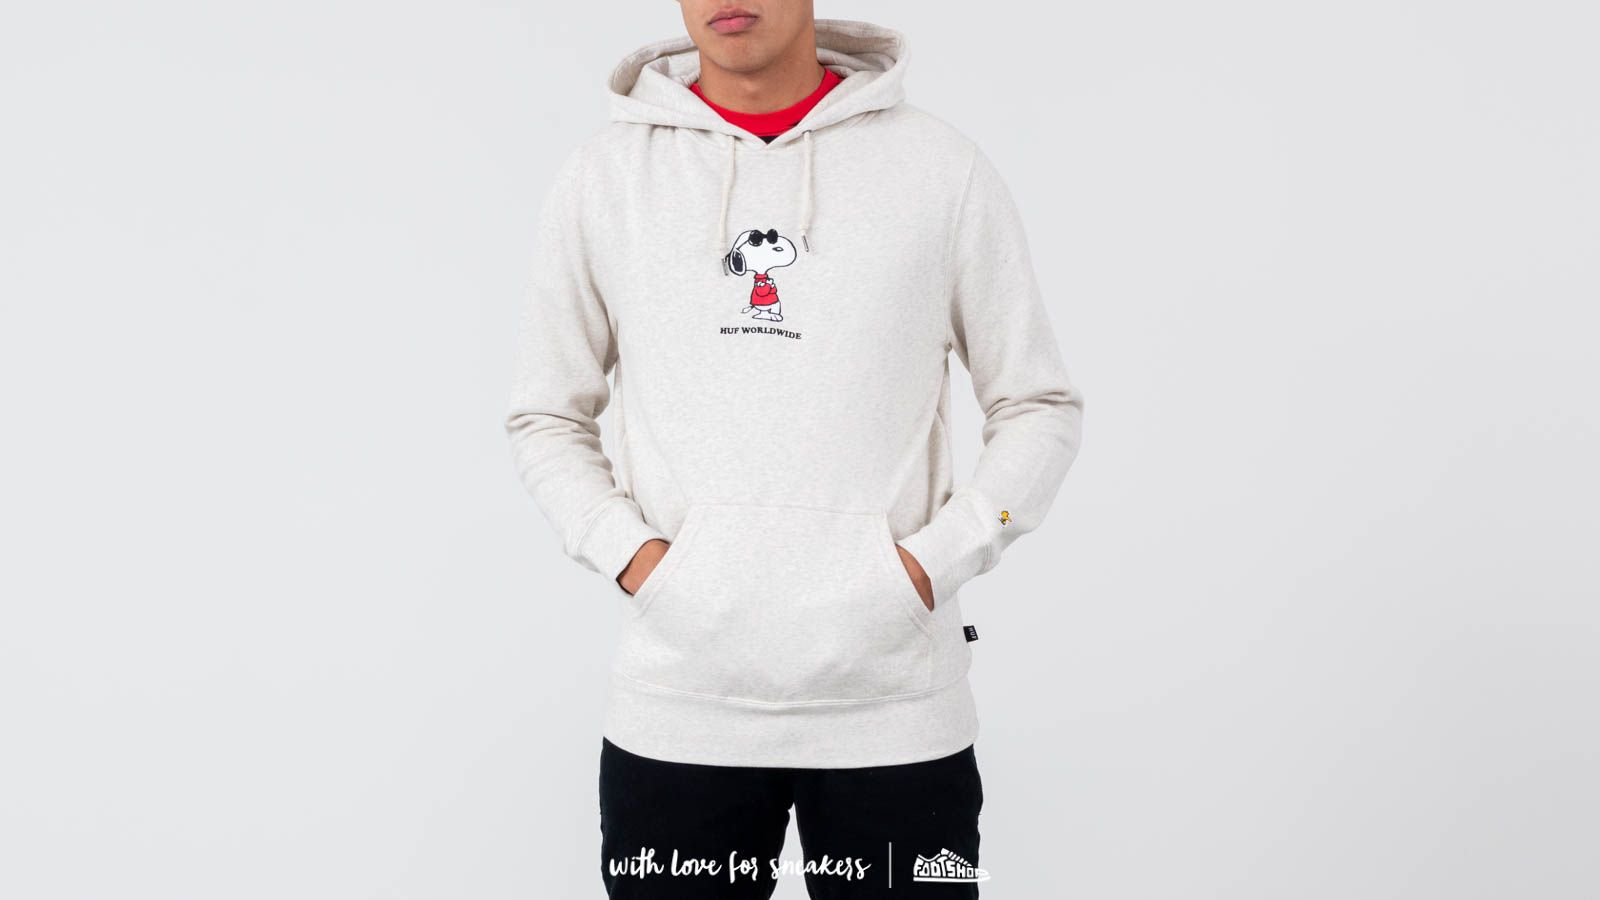 HUF x Peanuts Snoopy Cool Pulover Hoodie